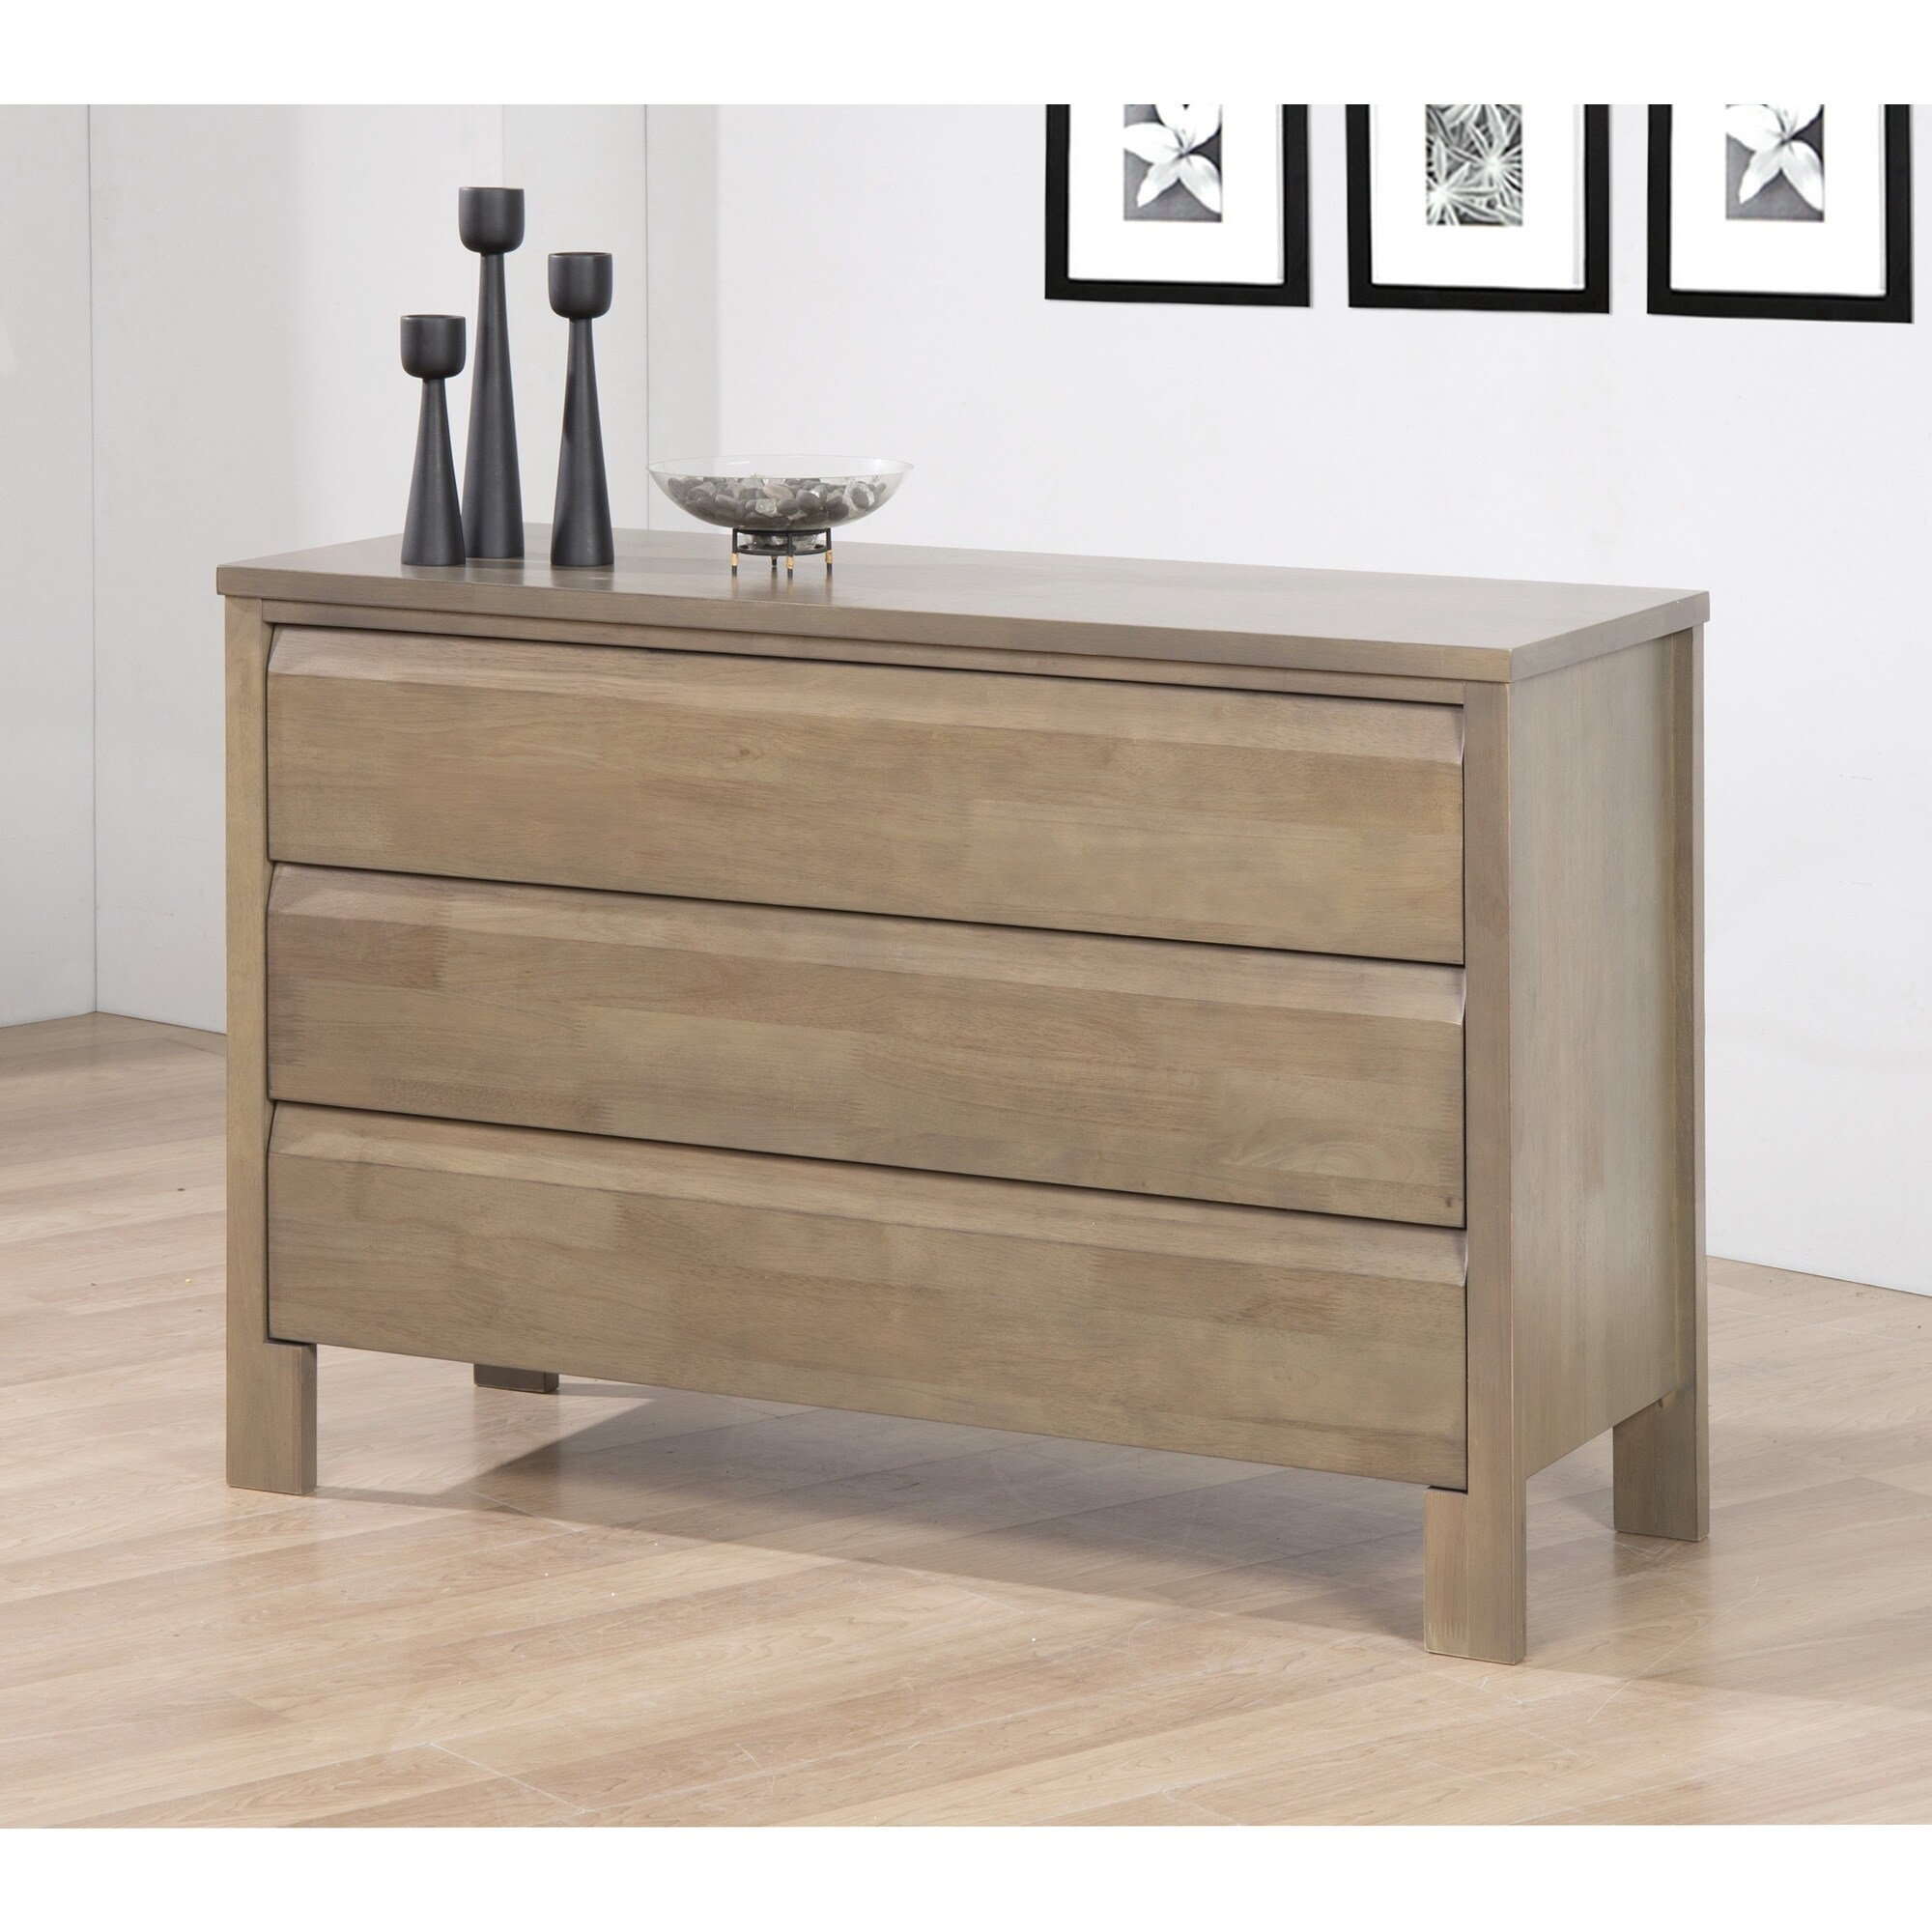 drawer hemnes dark catalog dresser us en products stained ikea gray